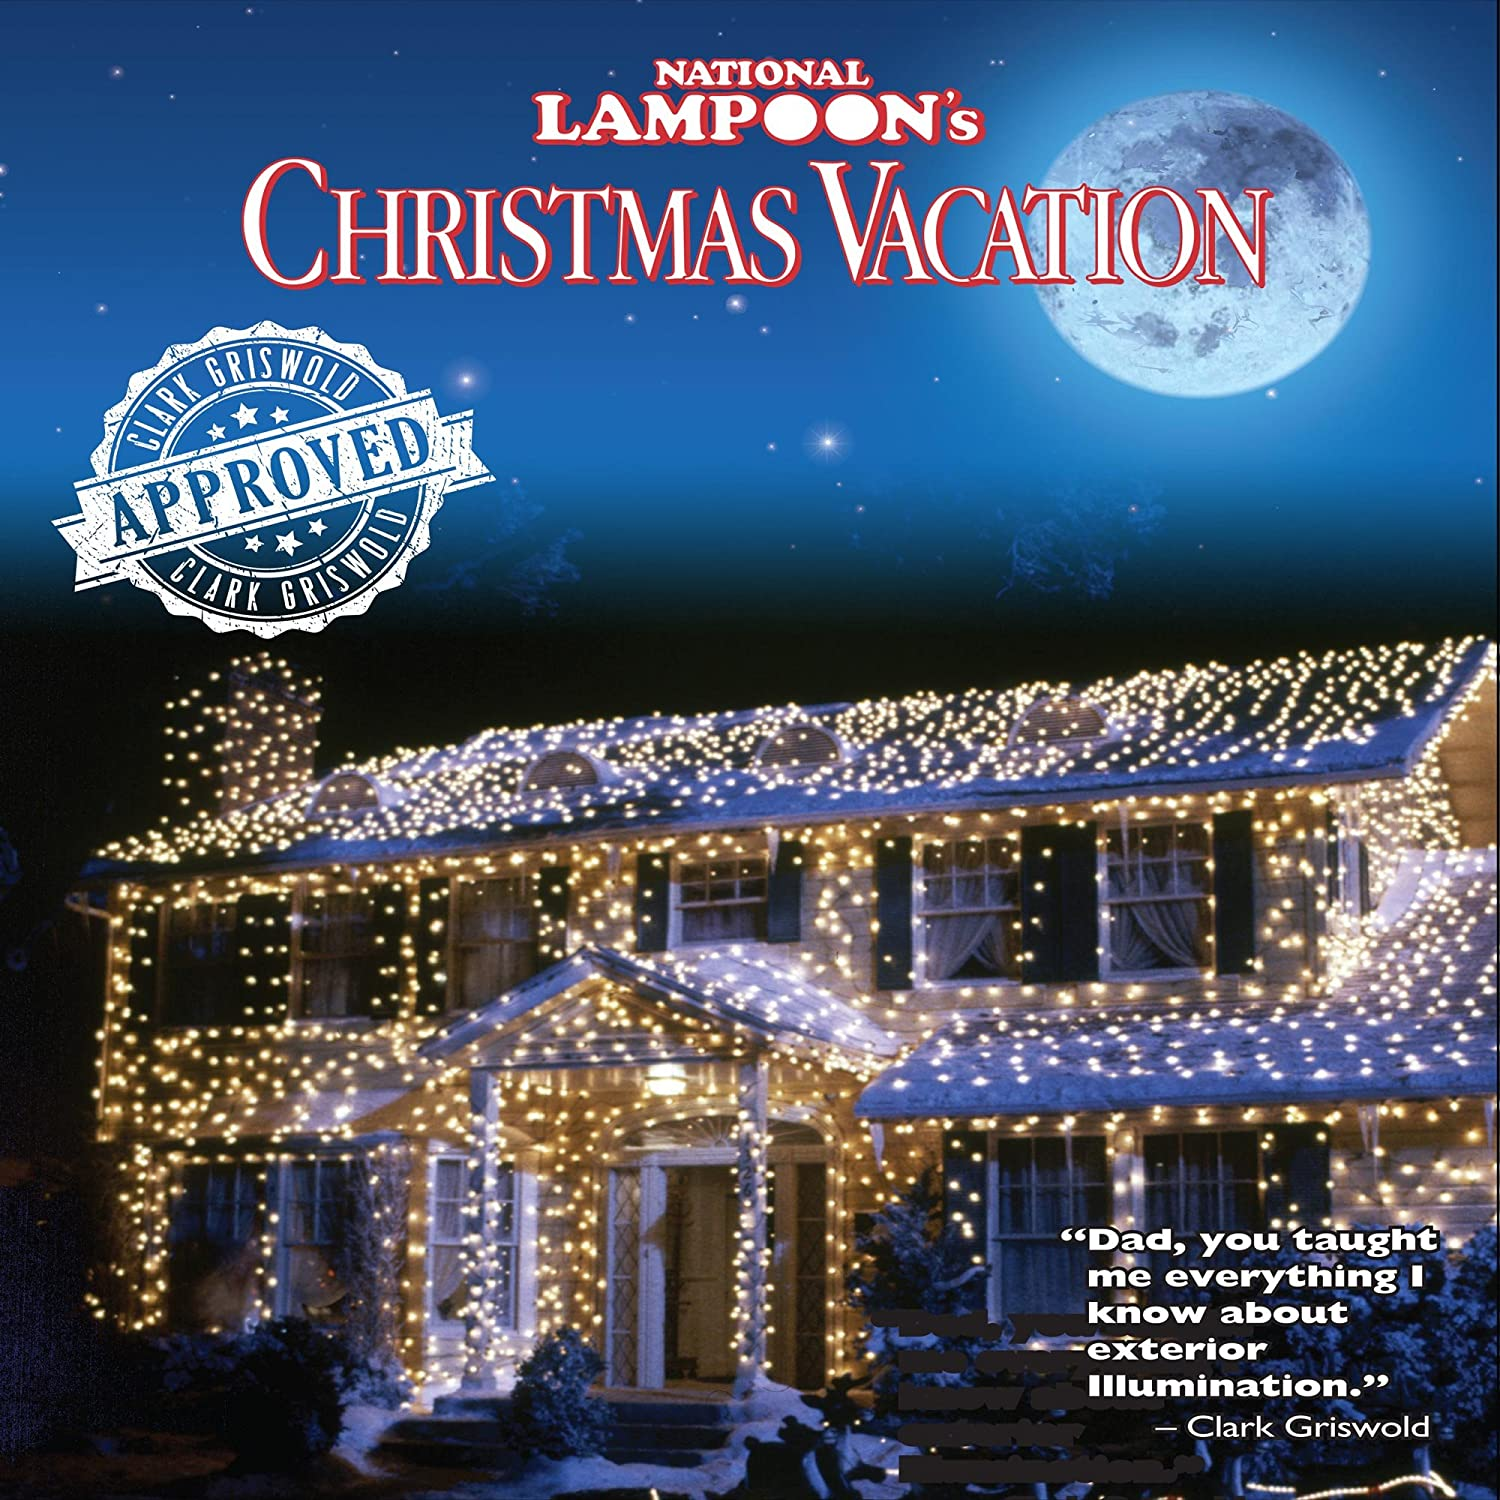 amazoncom national lampoons christmas vacation led m8 mini light set blue green wire 50 light 17 long garden outdoor